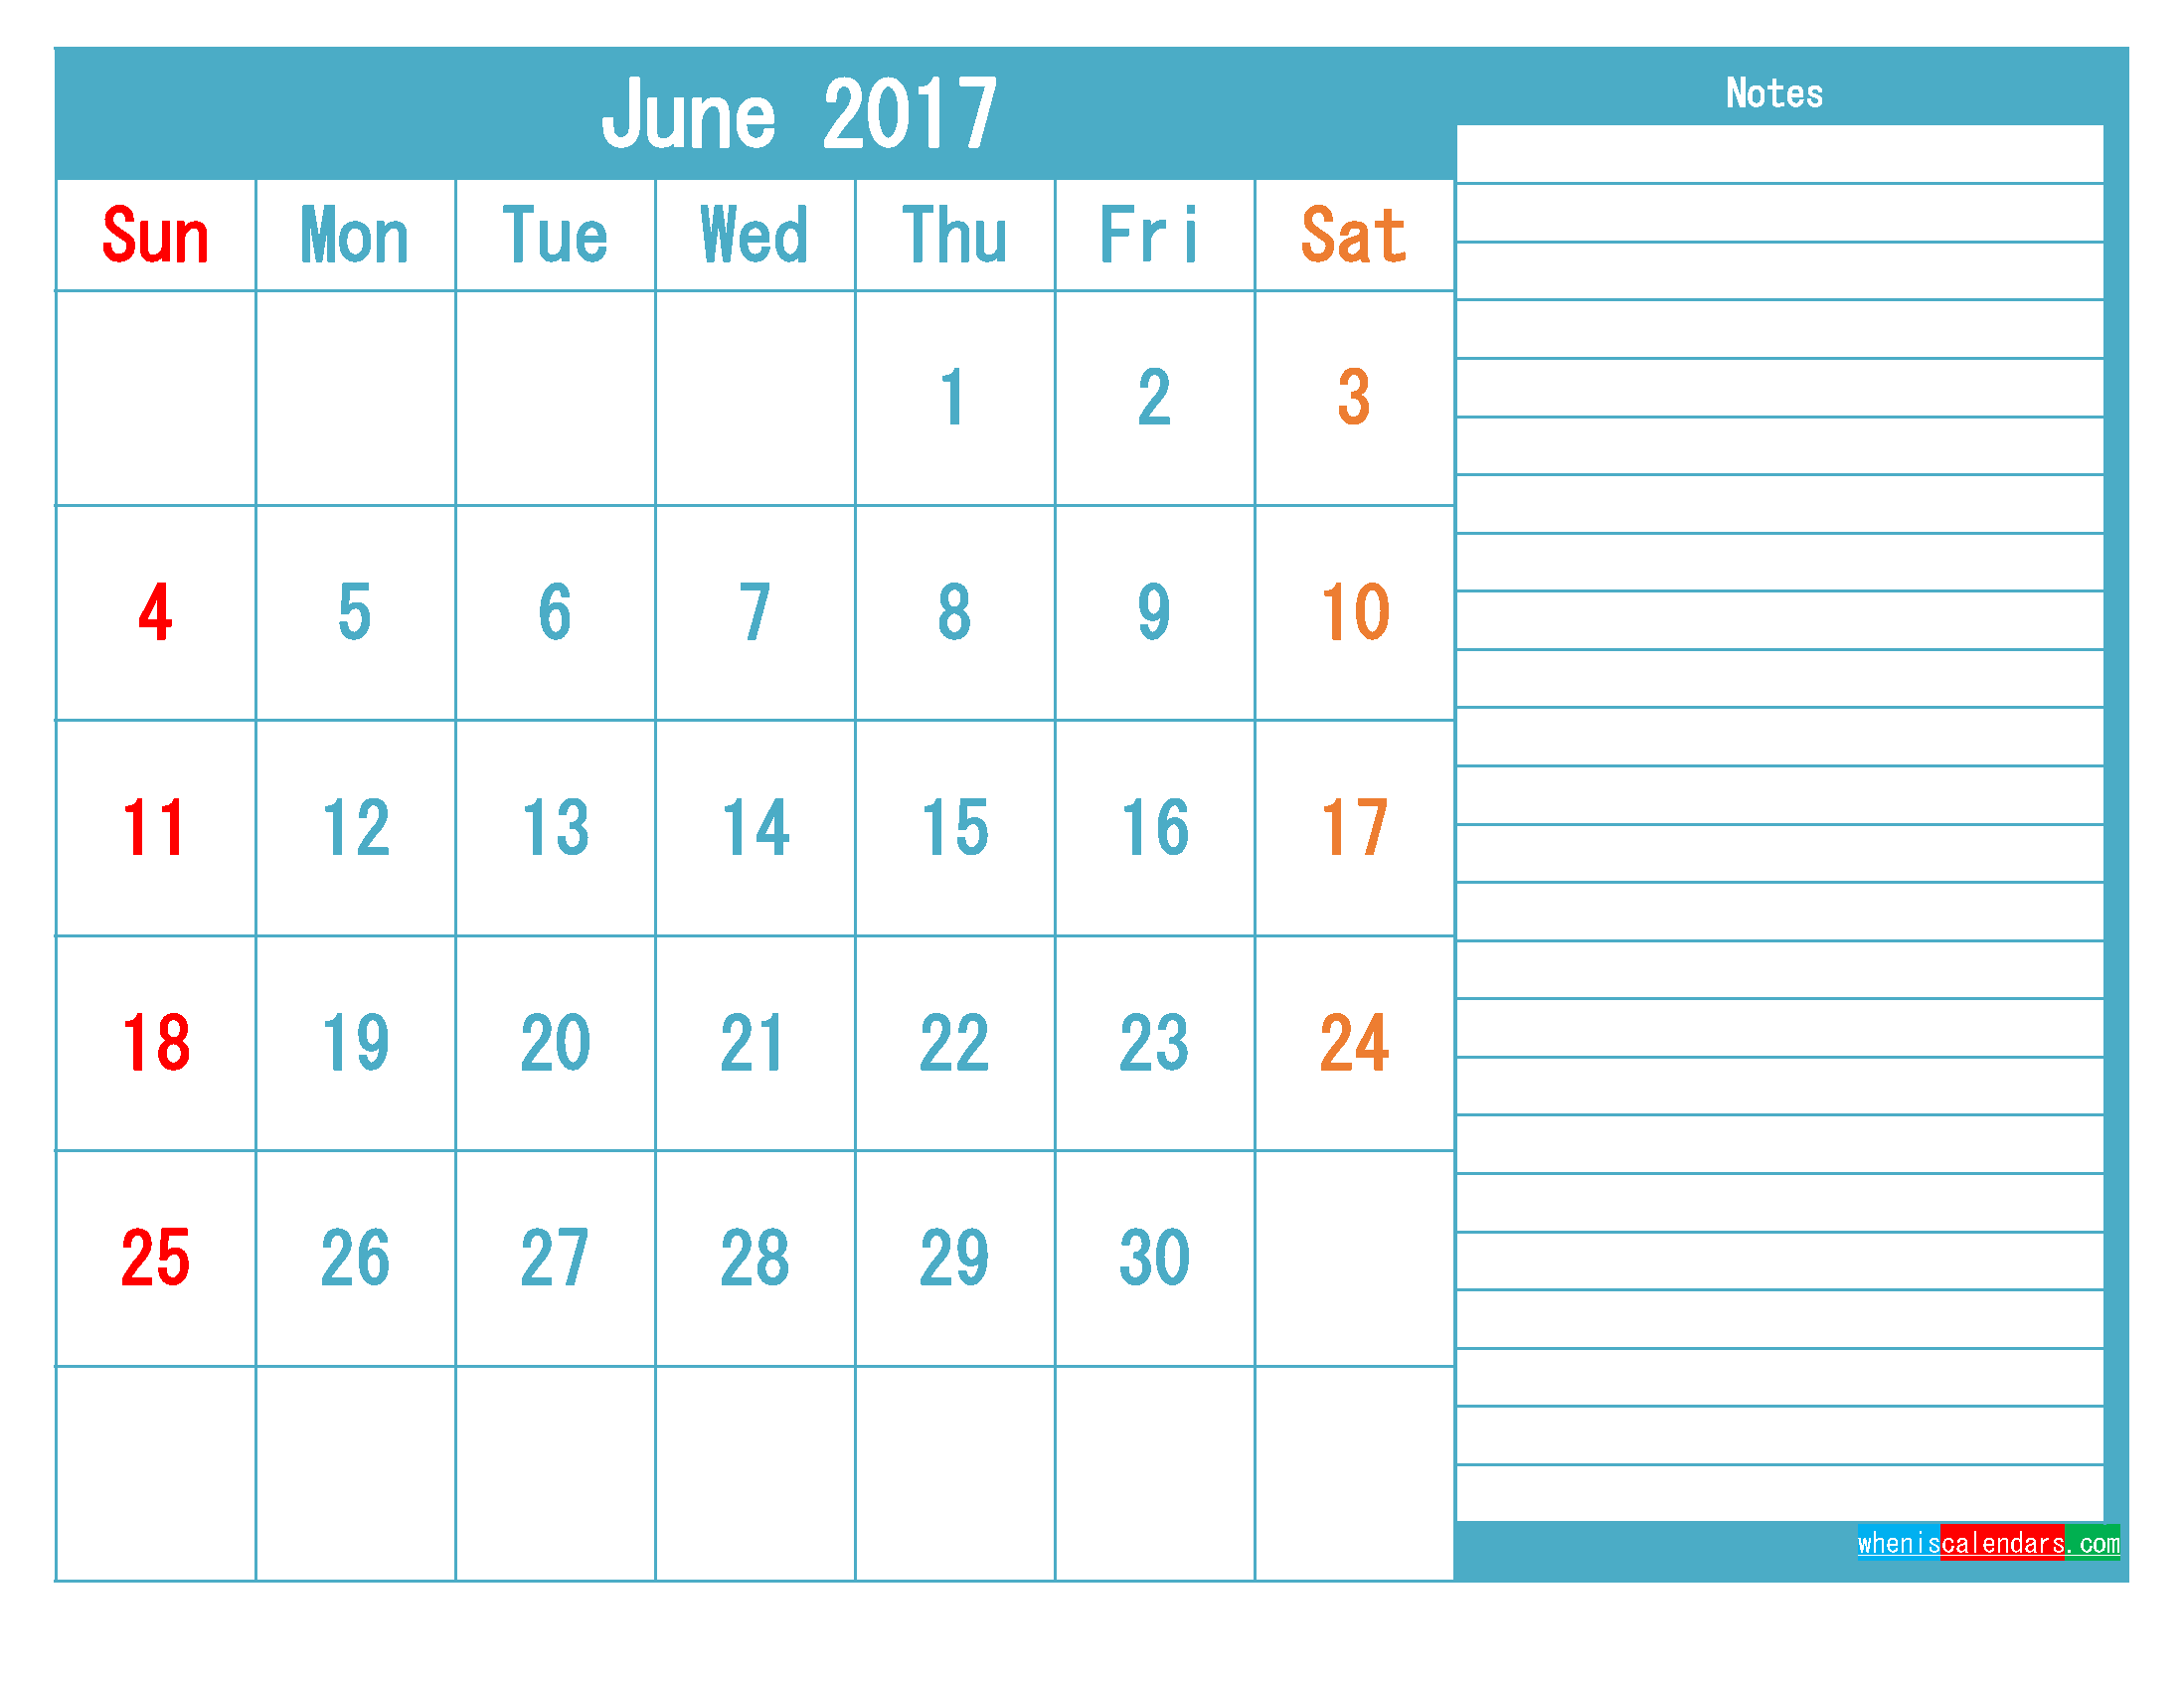 June 2017 Printable Calendar Templates PDF and Image